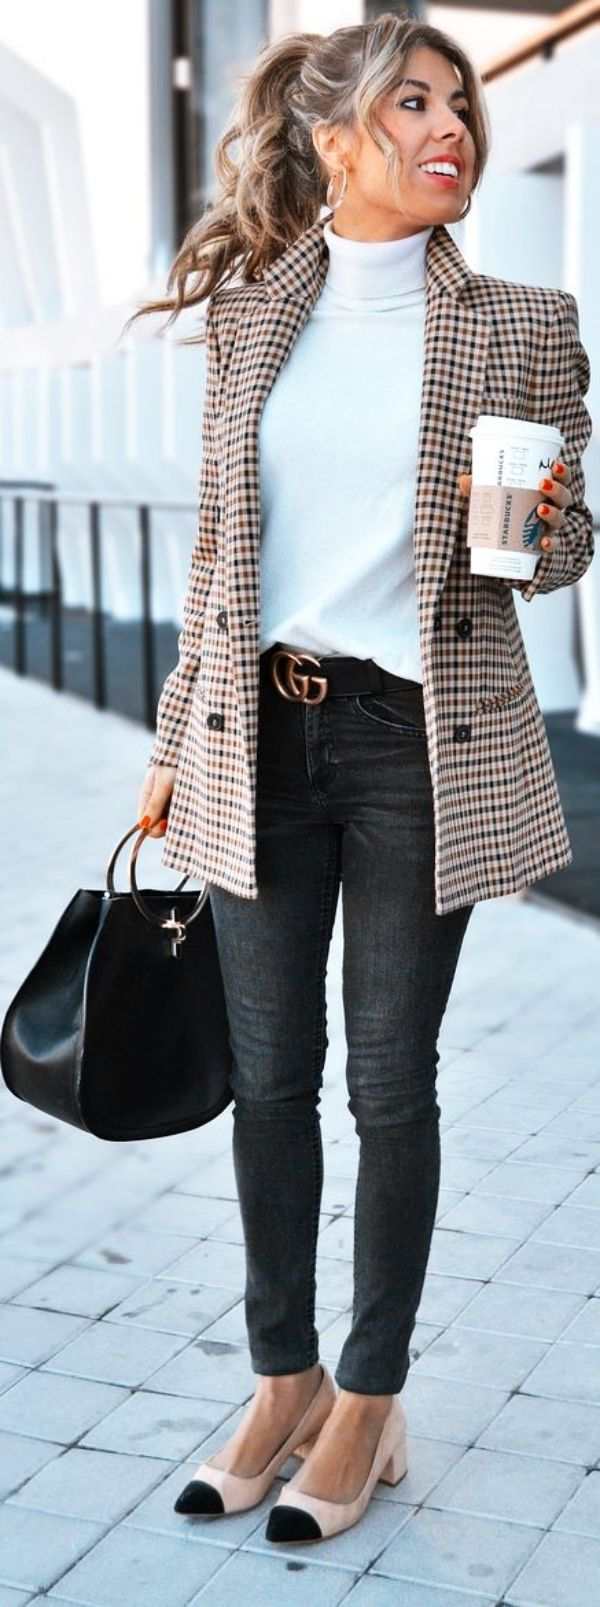 40 Attractive Outfit Ideas for Women over 35